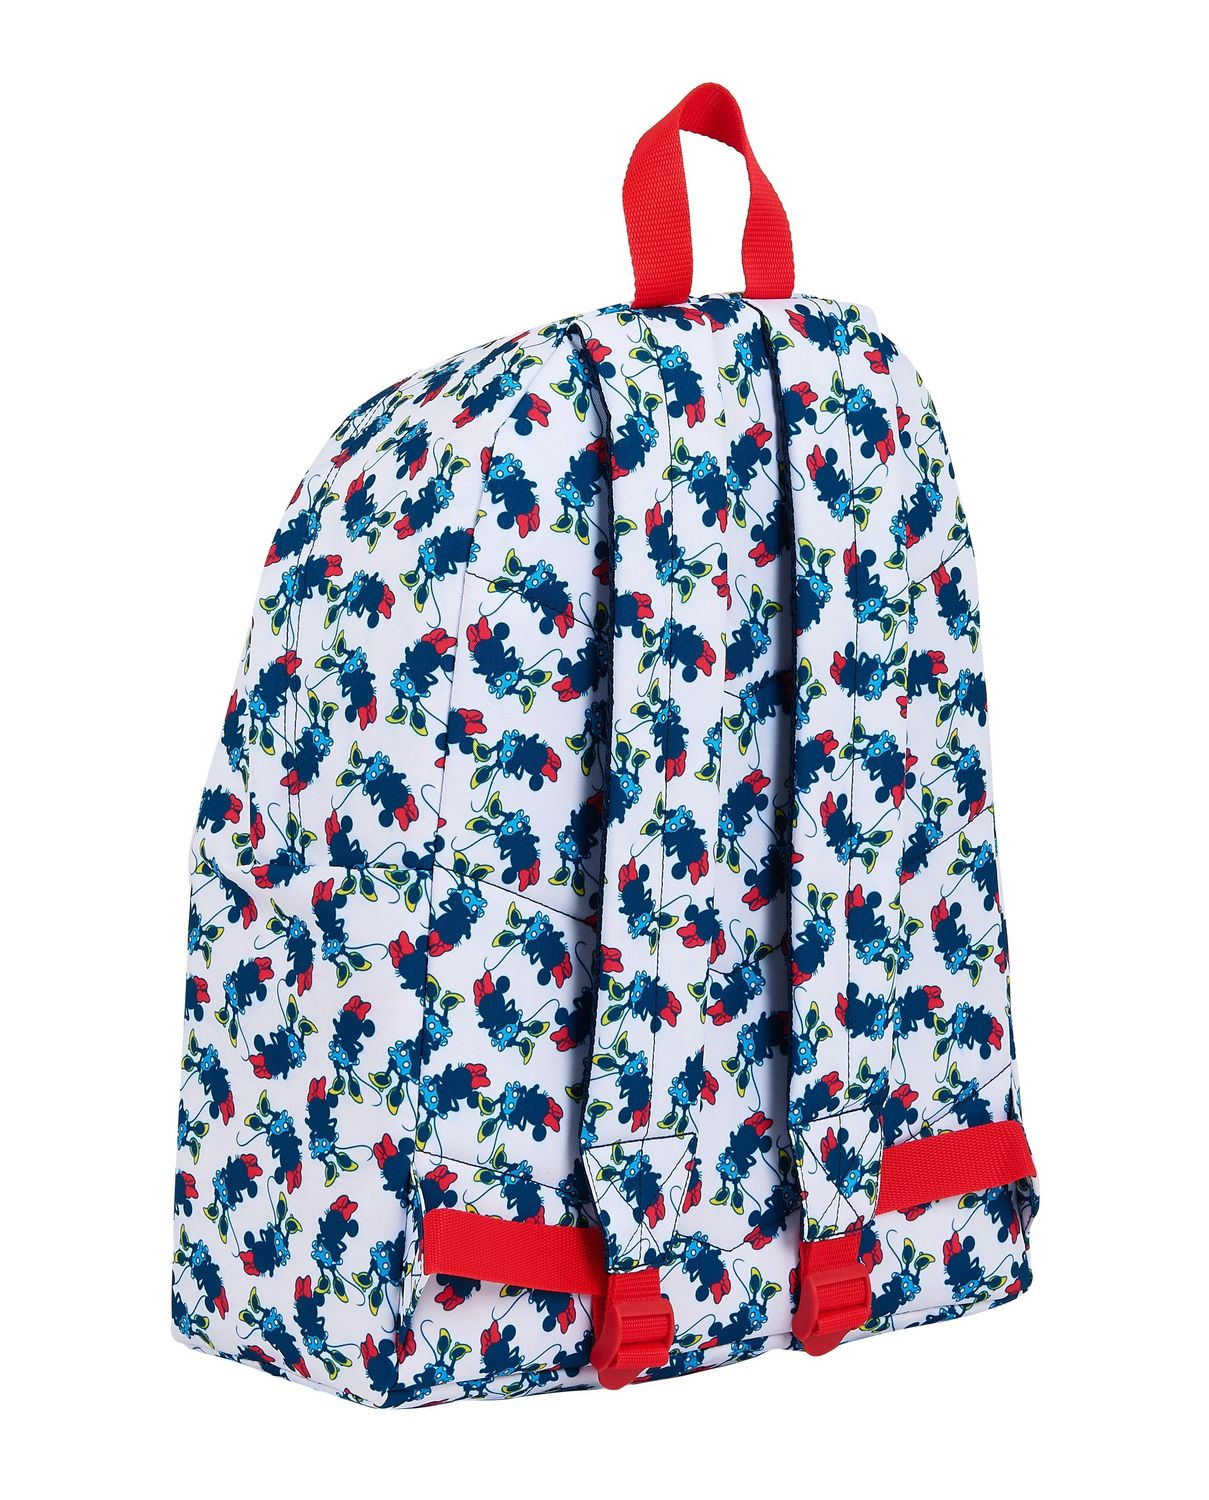 MINNIE MOUSE STYLE Backpack 42 cm – image 2